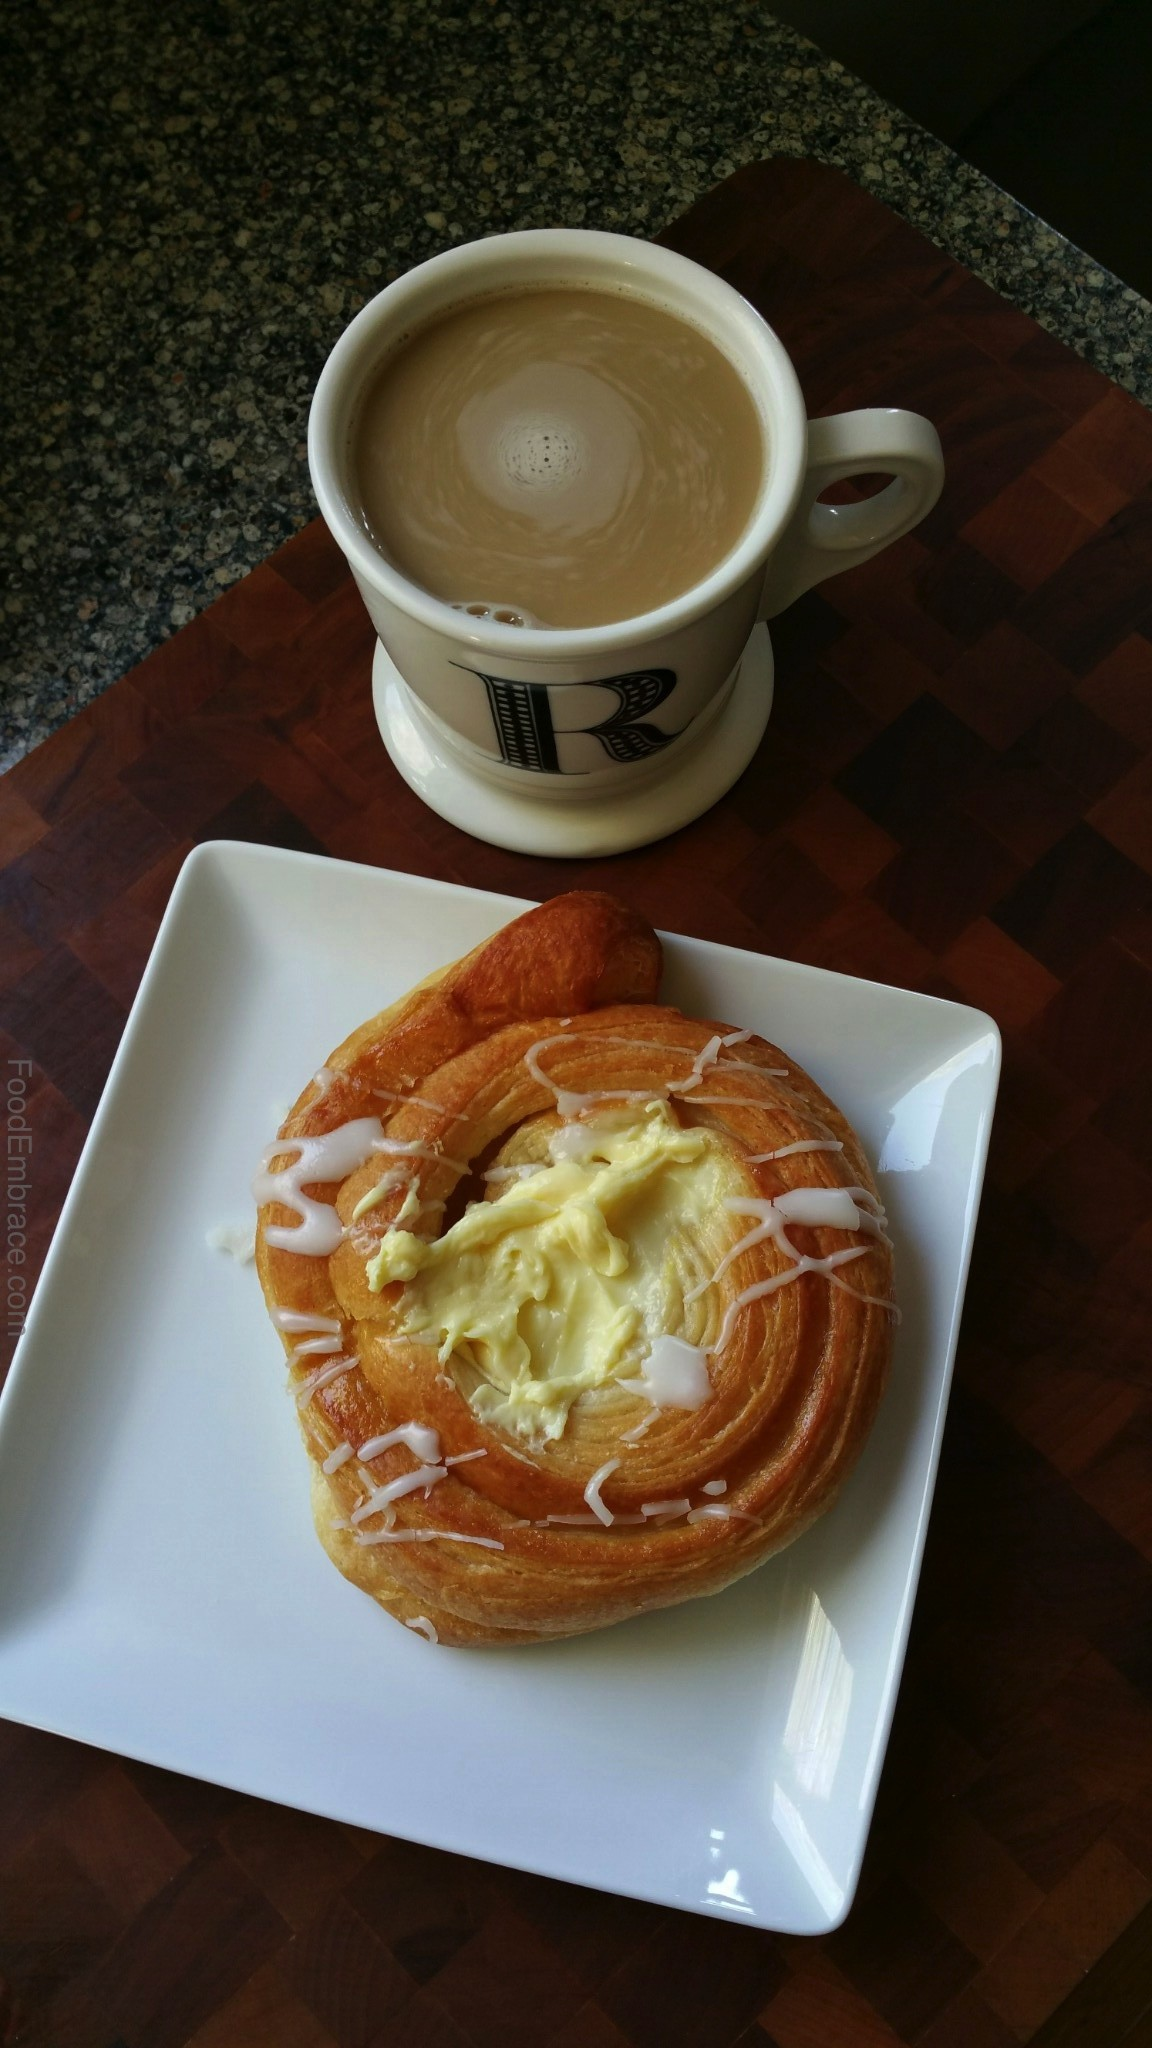 cheese danish from farmer's market